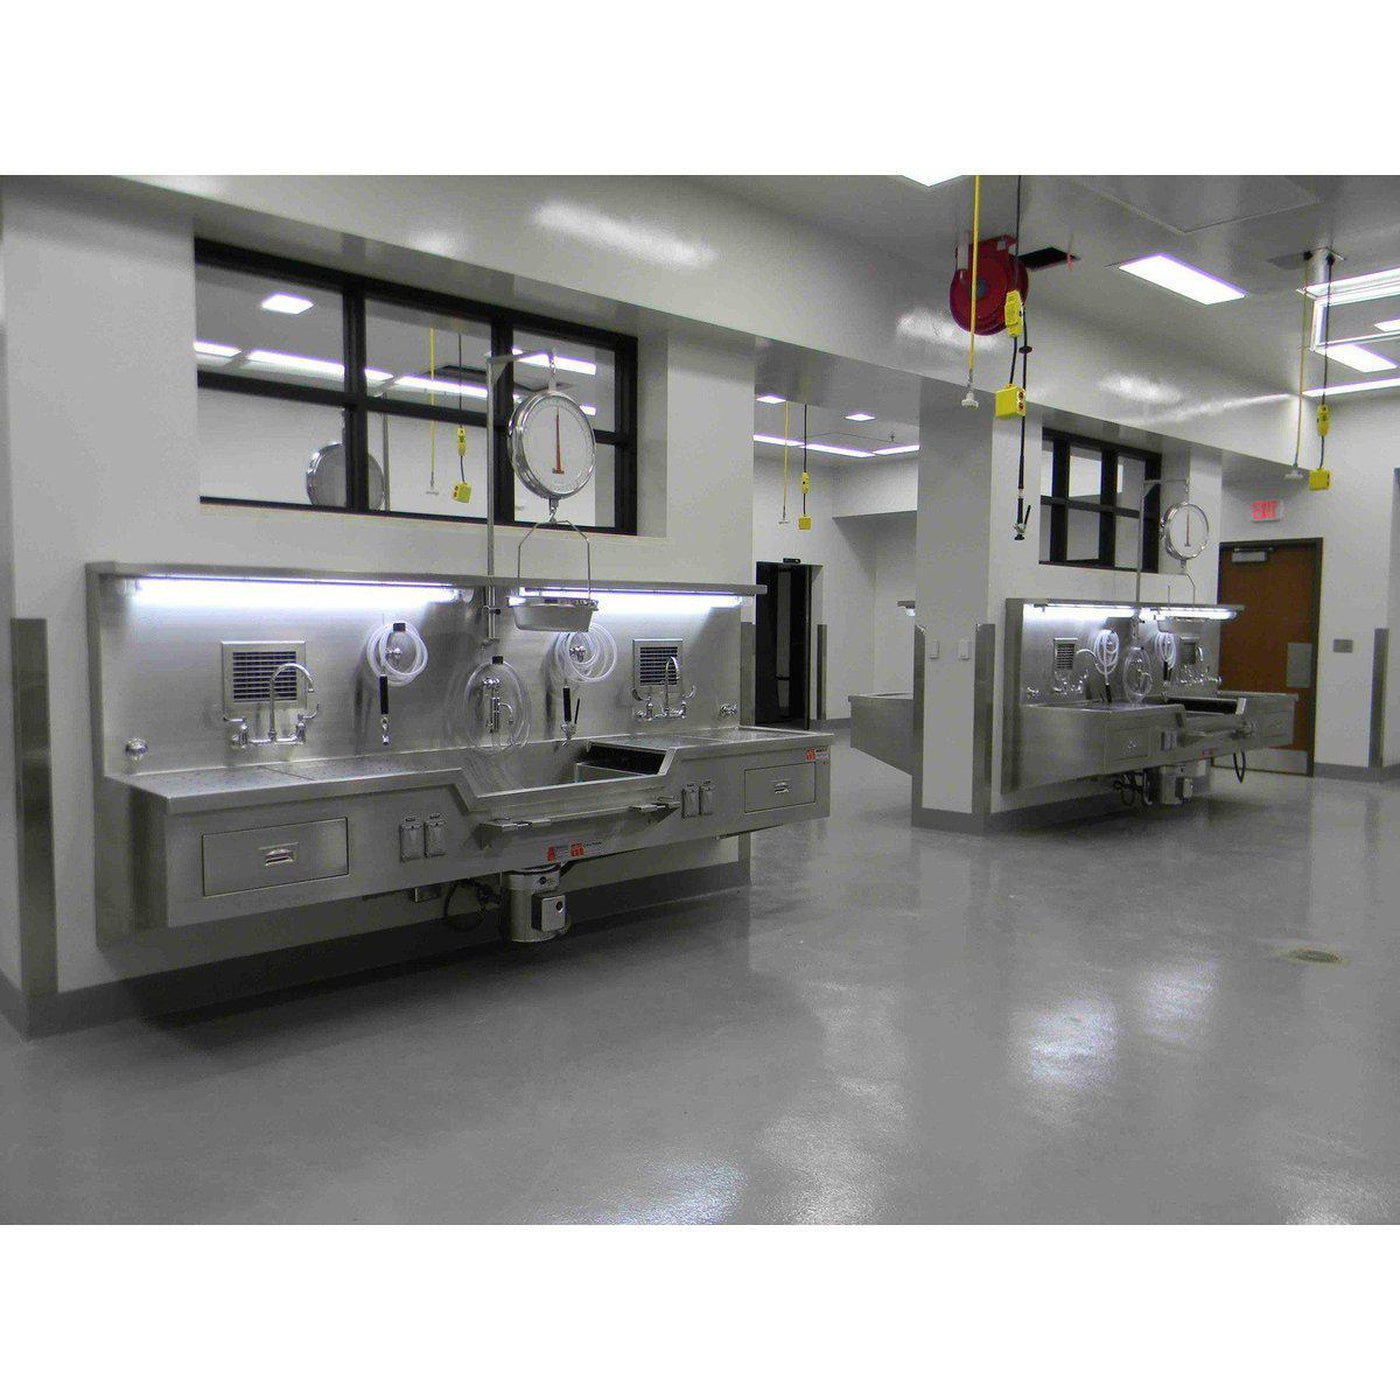 Wall mount autopsy station center sink mortech Embalming room design